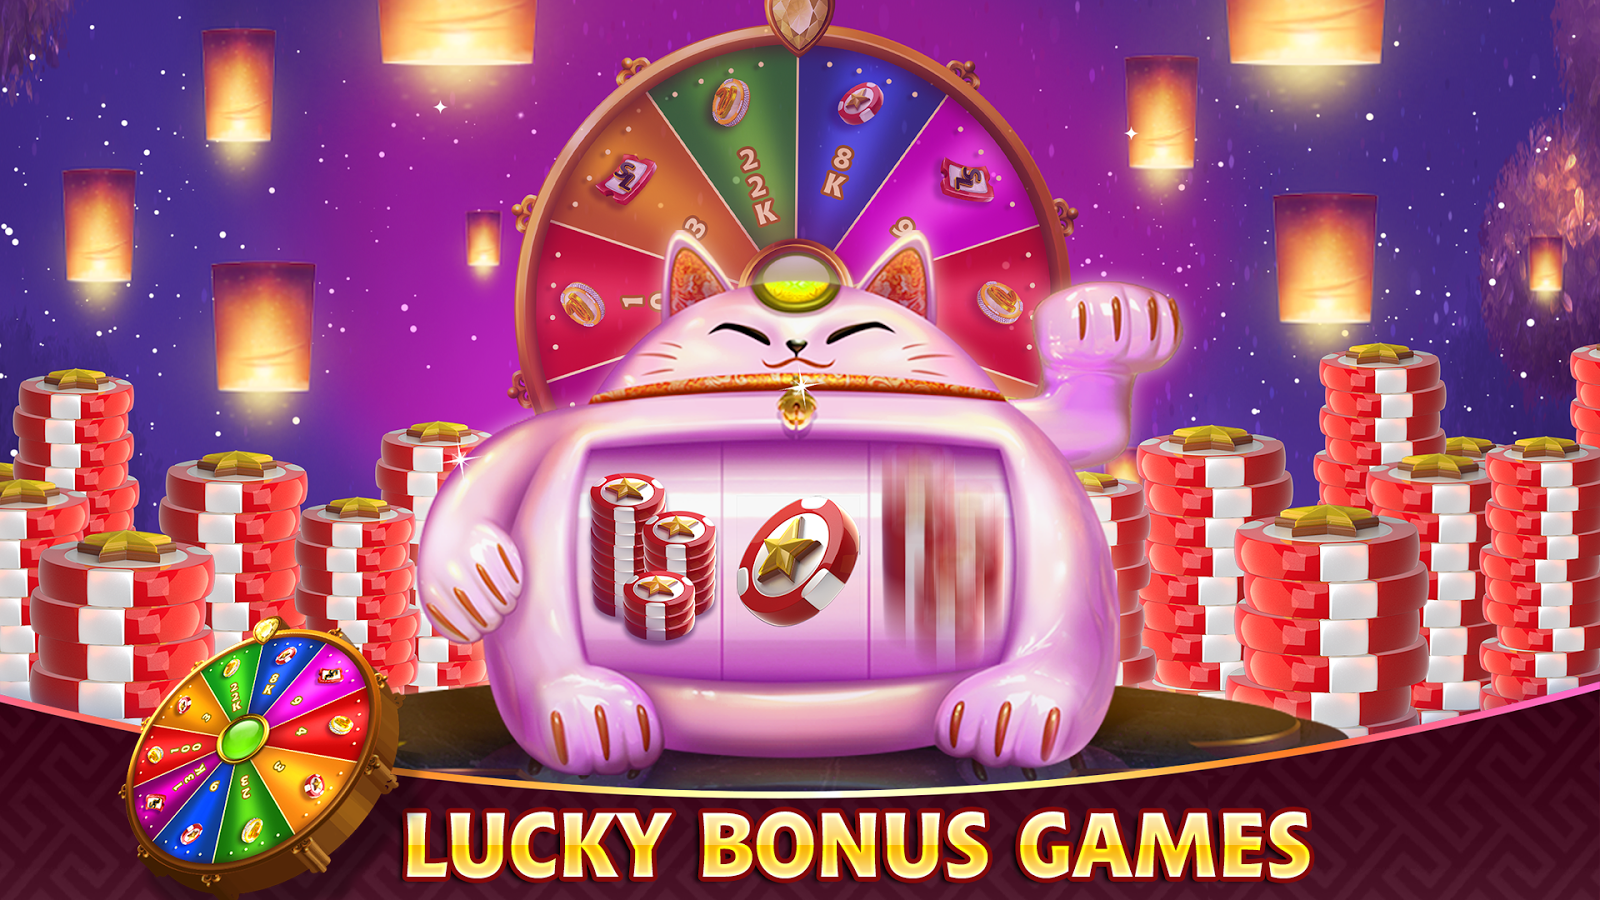 Free slot games to play on my phone